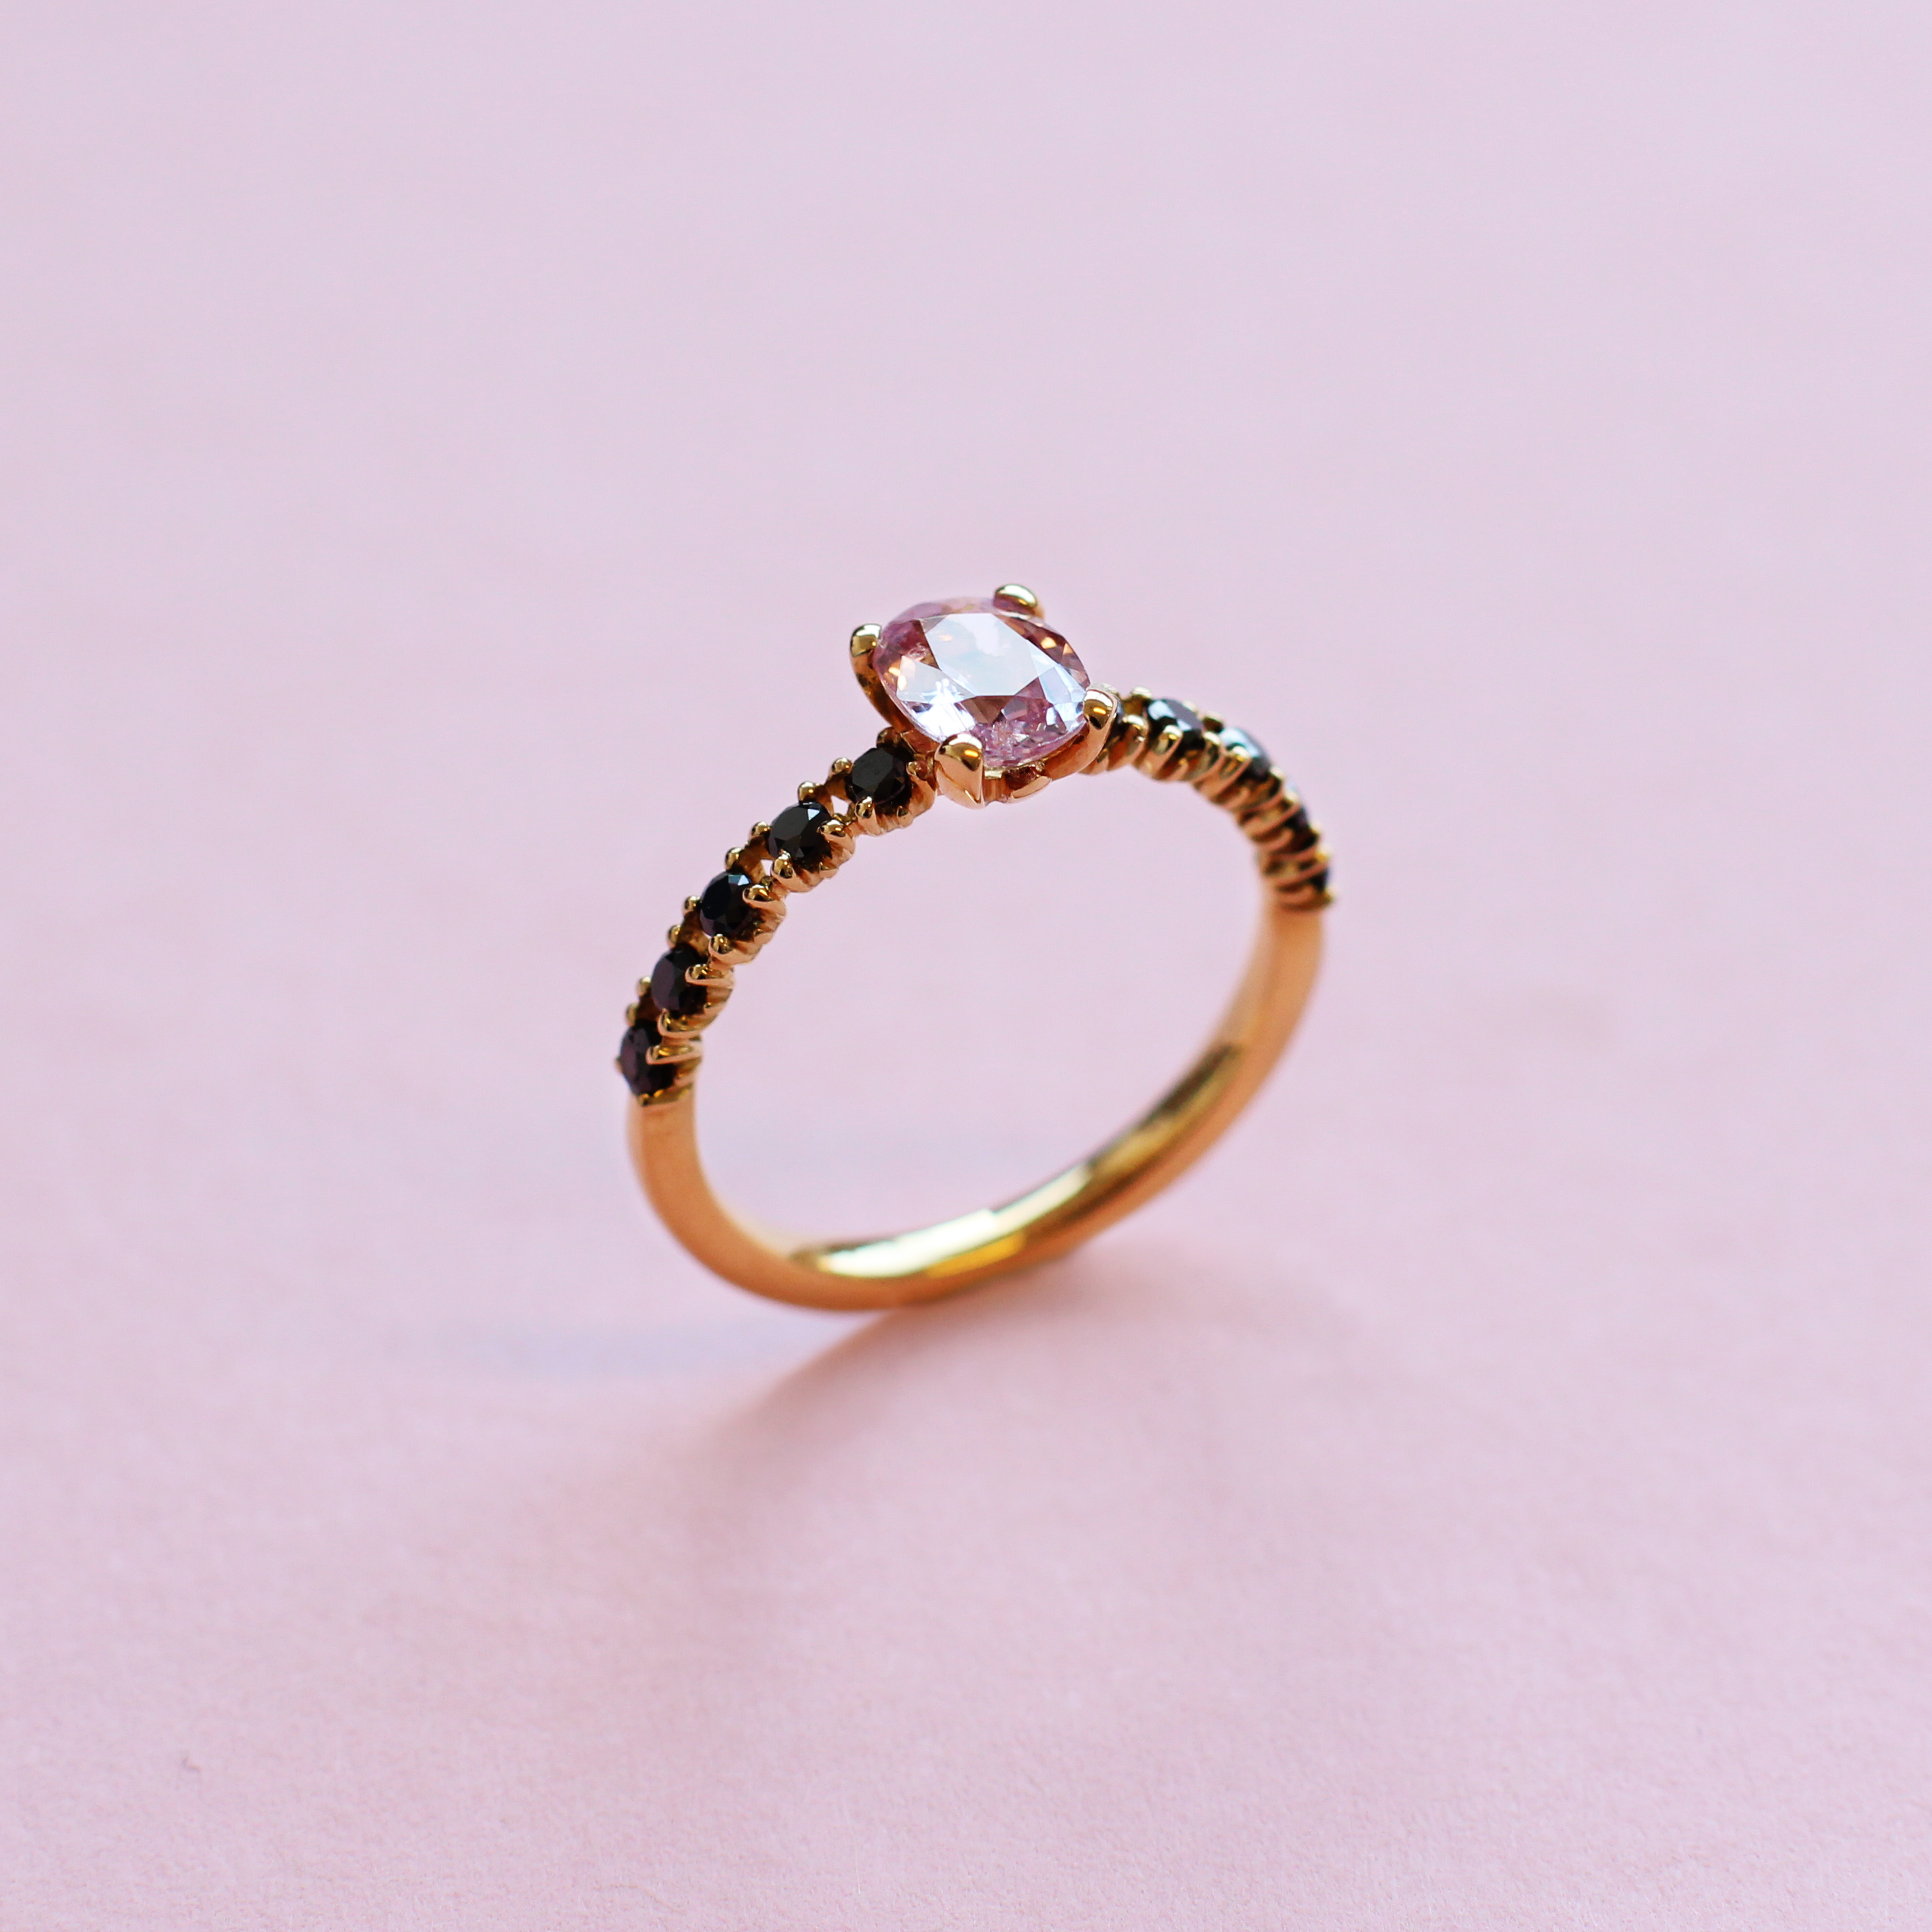 blossom solitaire ring – pink sapphire, black diamond and 18k yellow gold